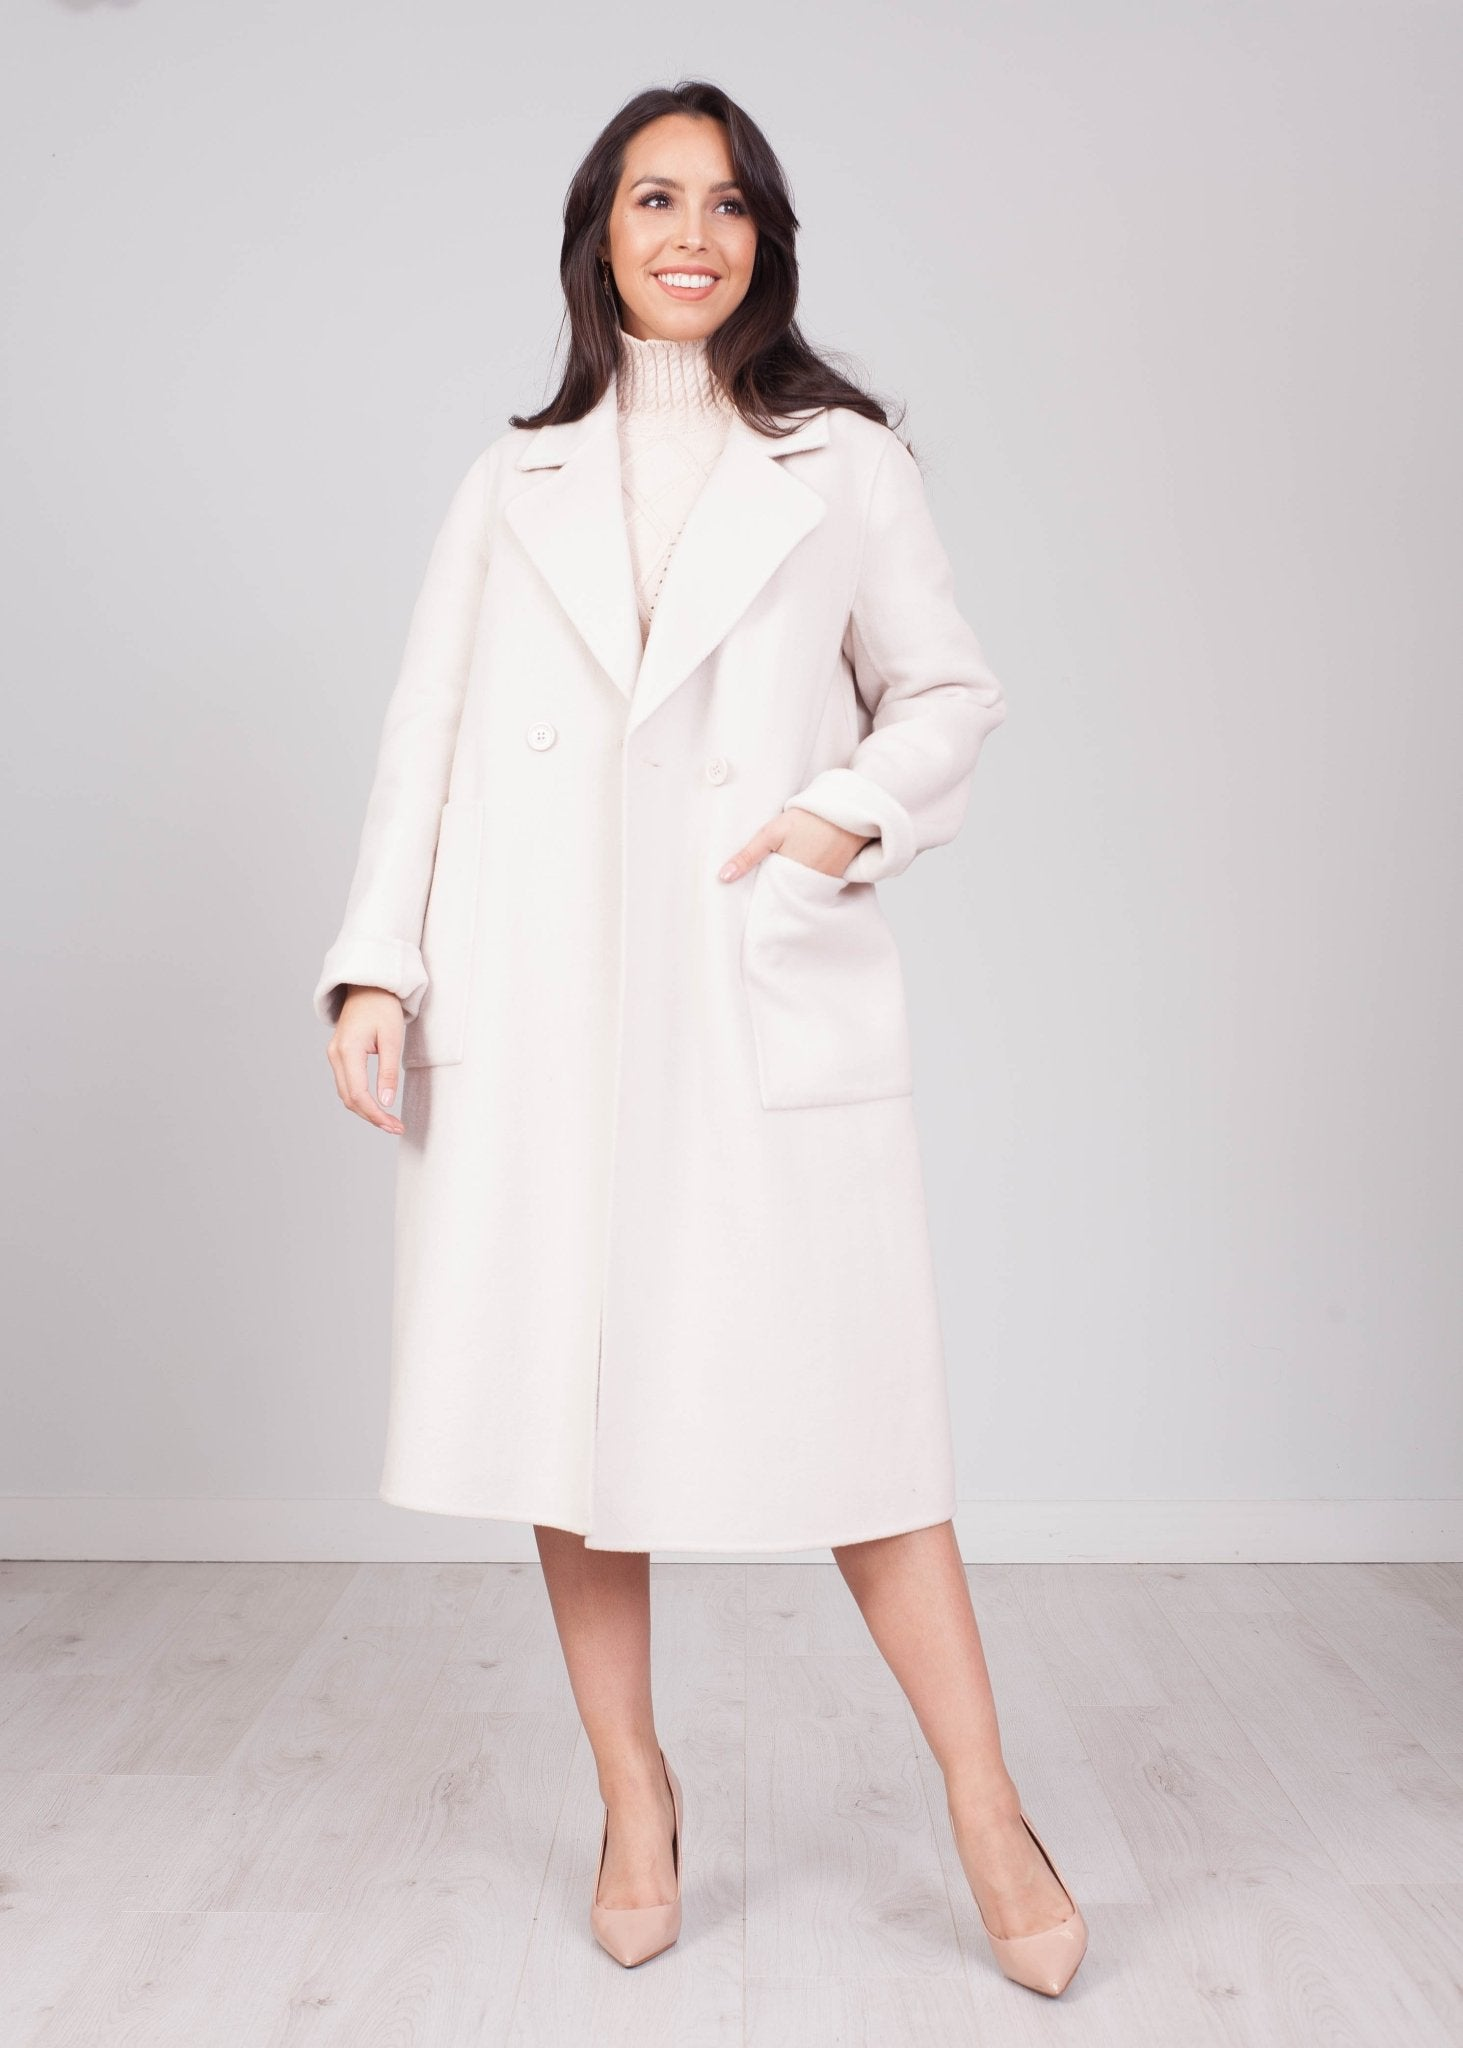 Sophia Cream Longline Coat - The Walk in Wardrobe